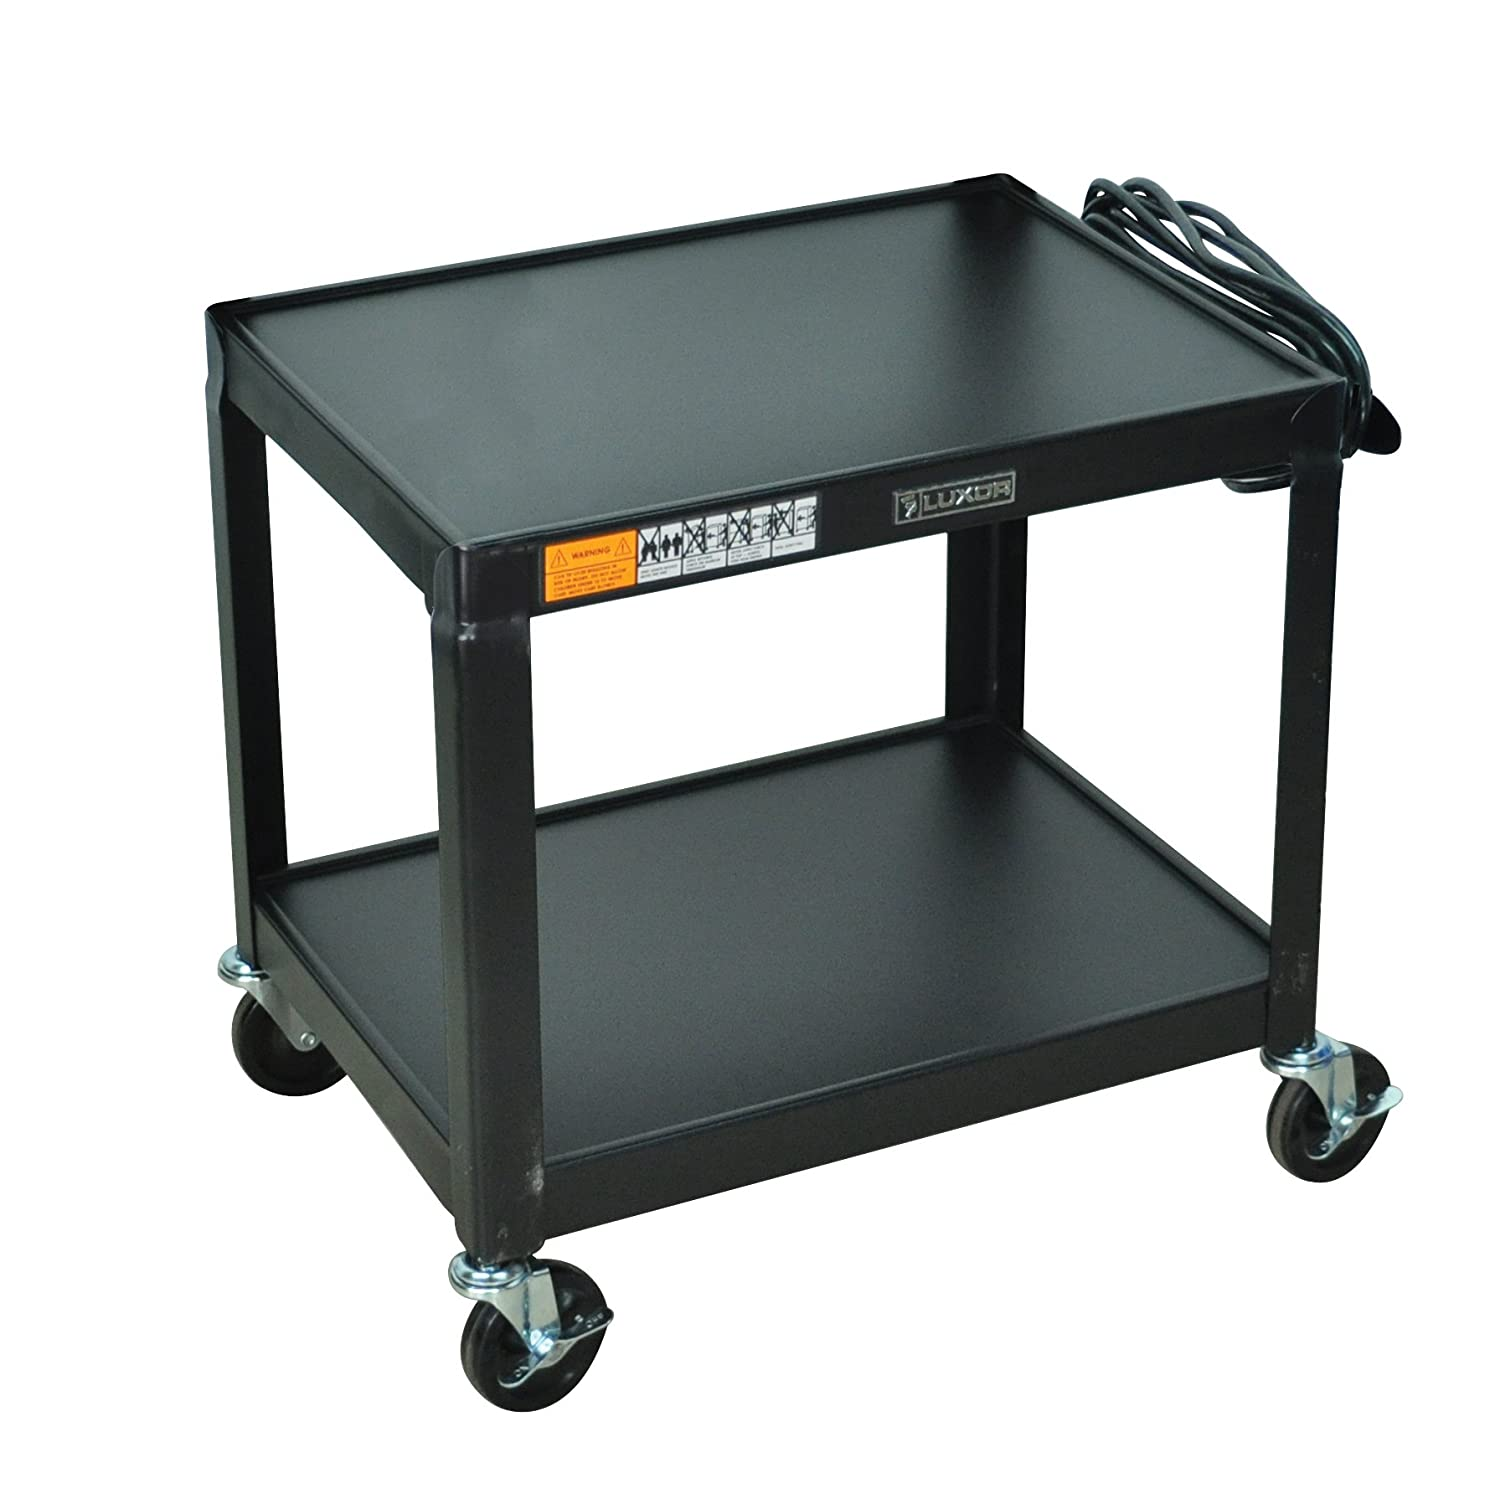 DMD Audio Visual AV Utility Cart Mobile Presentation Station with Two Shelves, 26 Inch Height, Electrical Assembly, High Gloss Metal Cart in Black